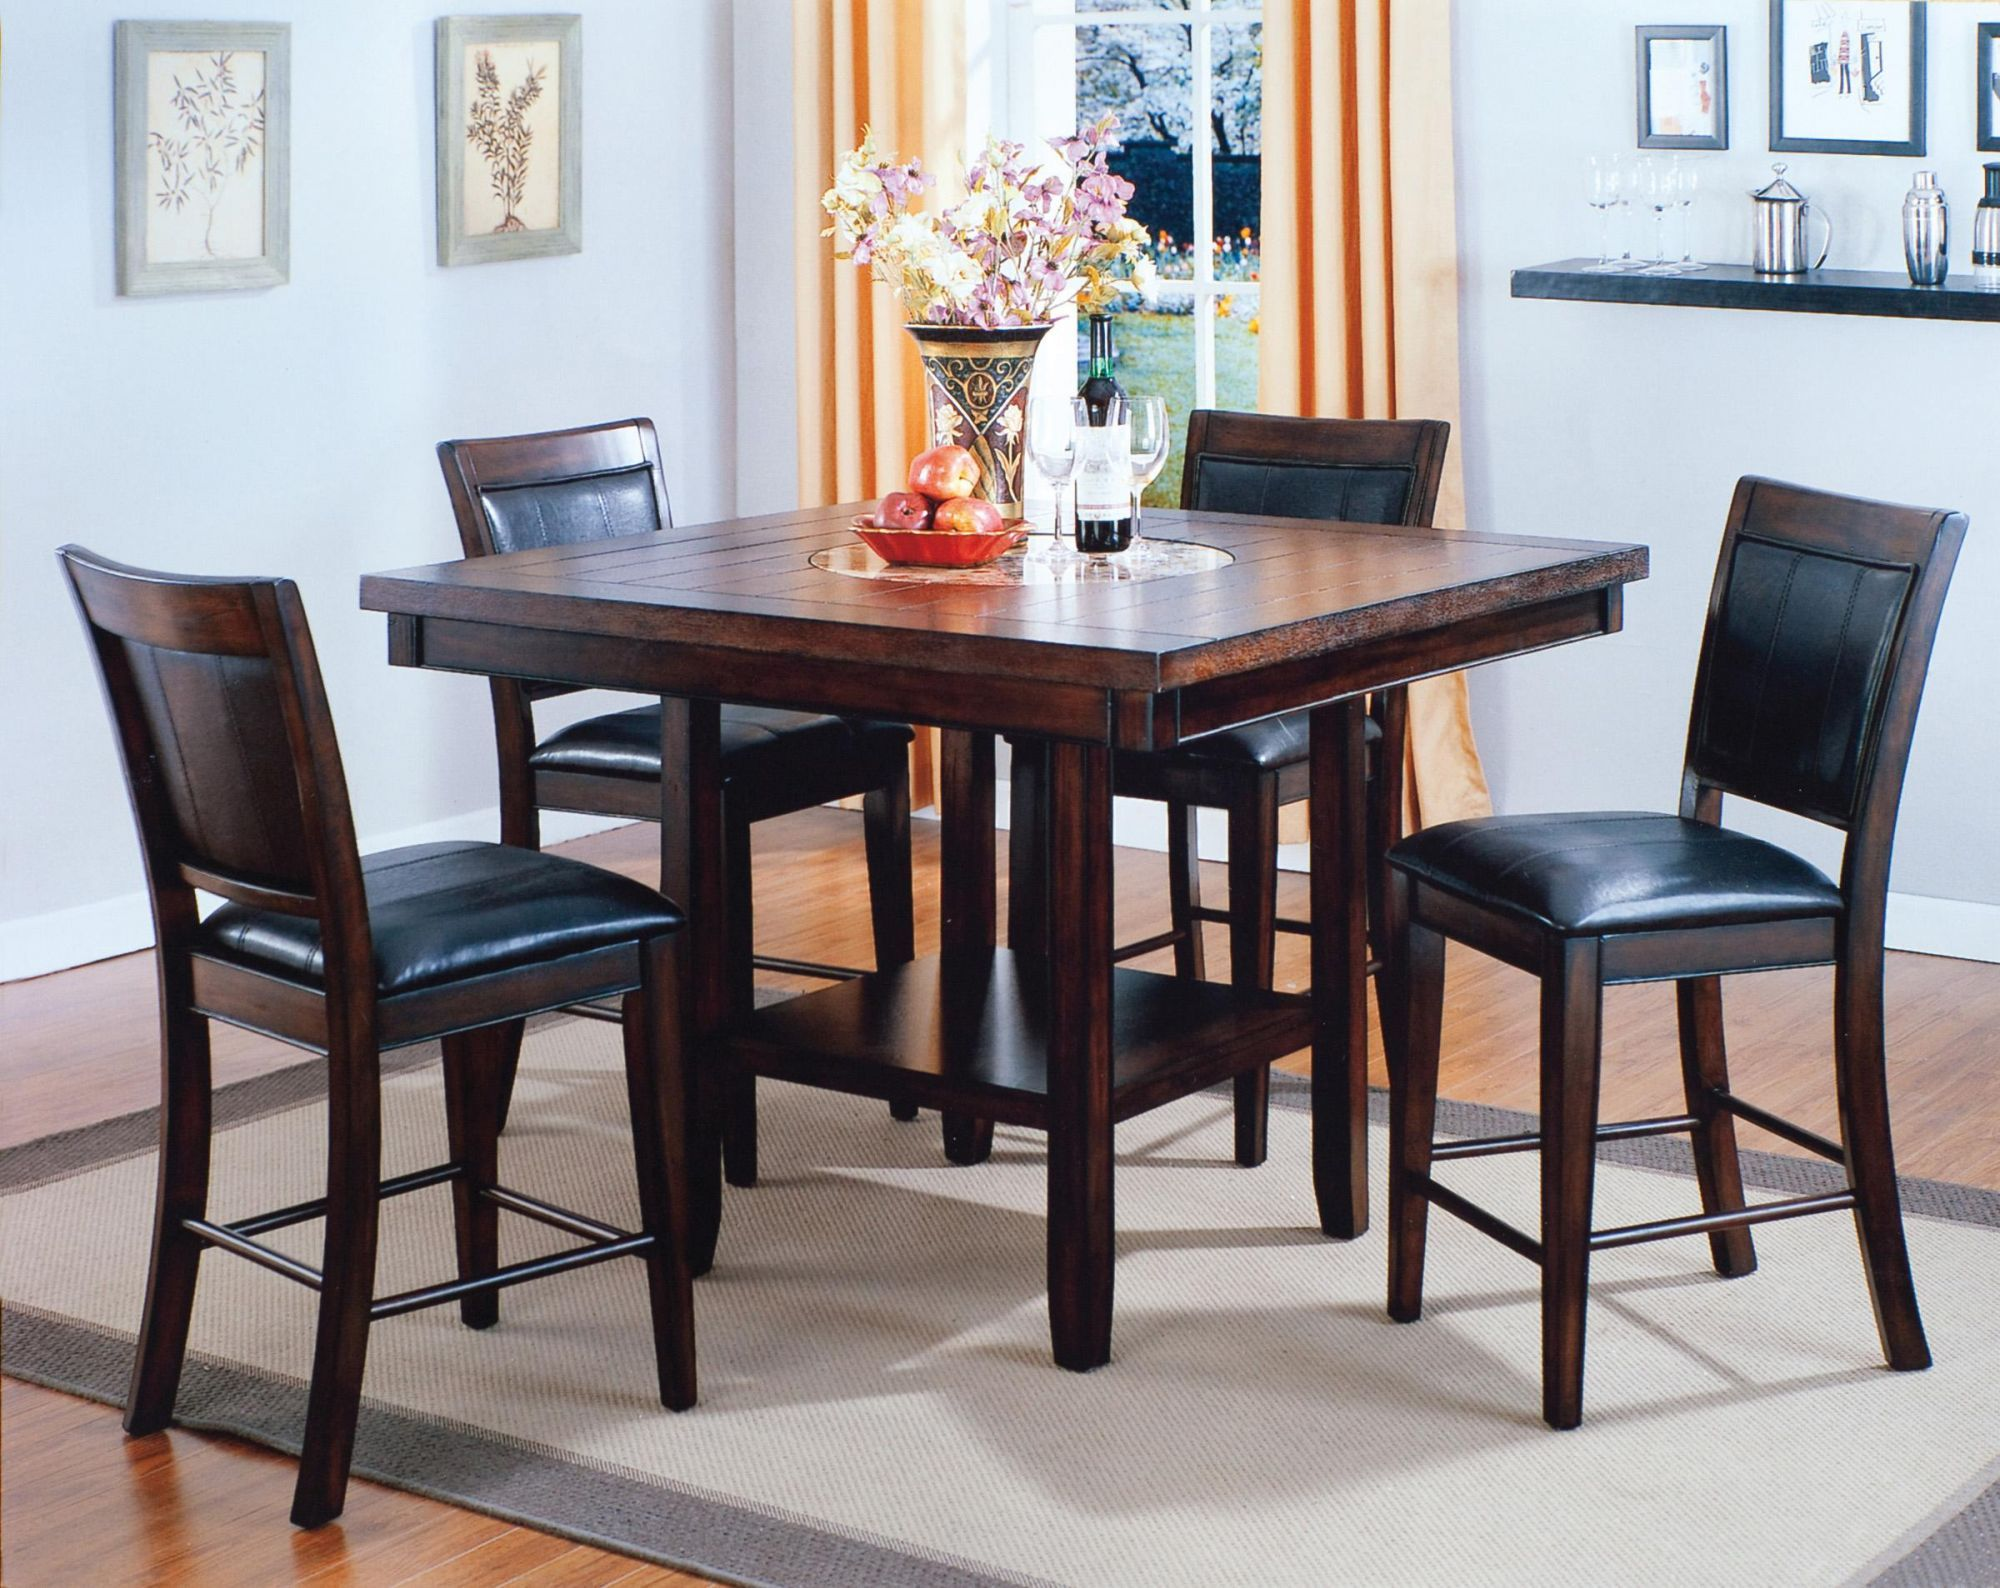 Fulton Dining Set Table With 4 Stools Counter Height Table